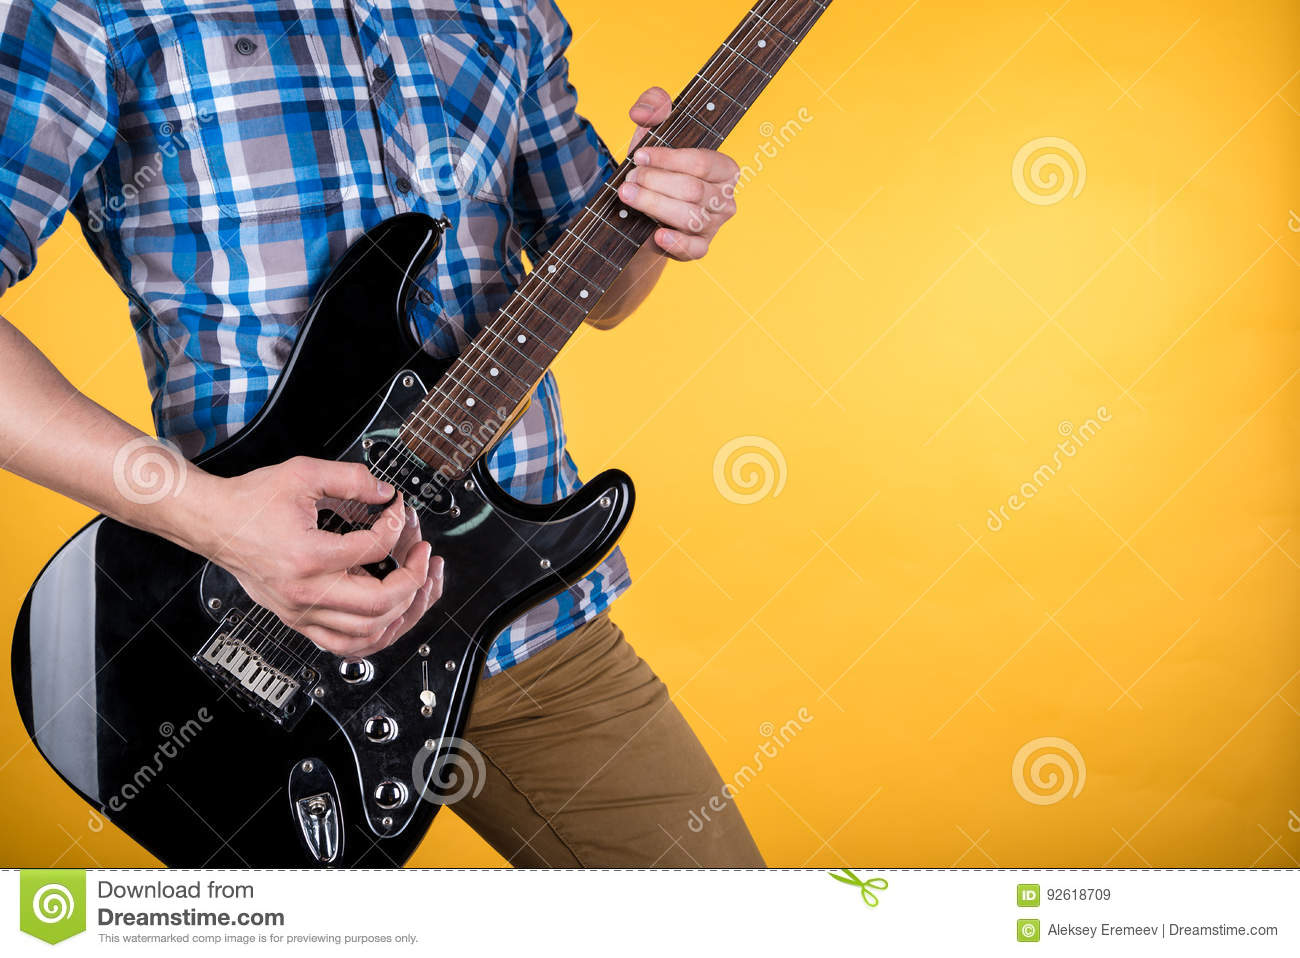 Music And Art. The Guitarist Plays The Electric Guitar On A Yellow ...